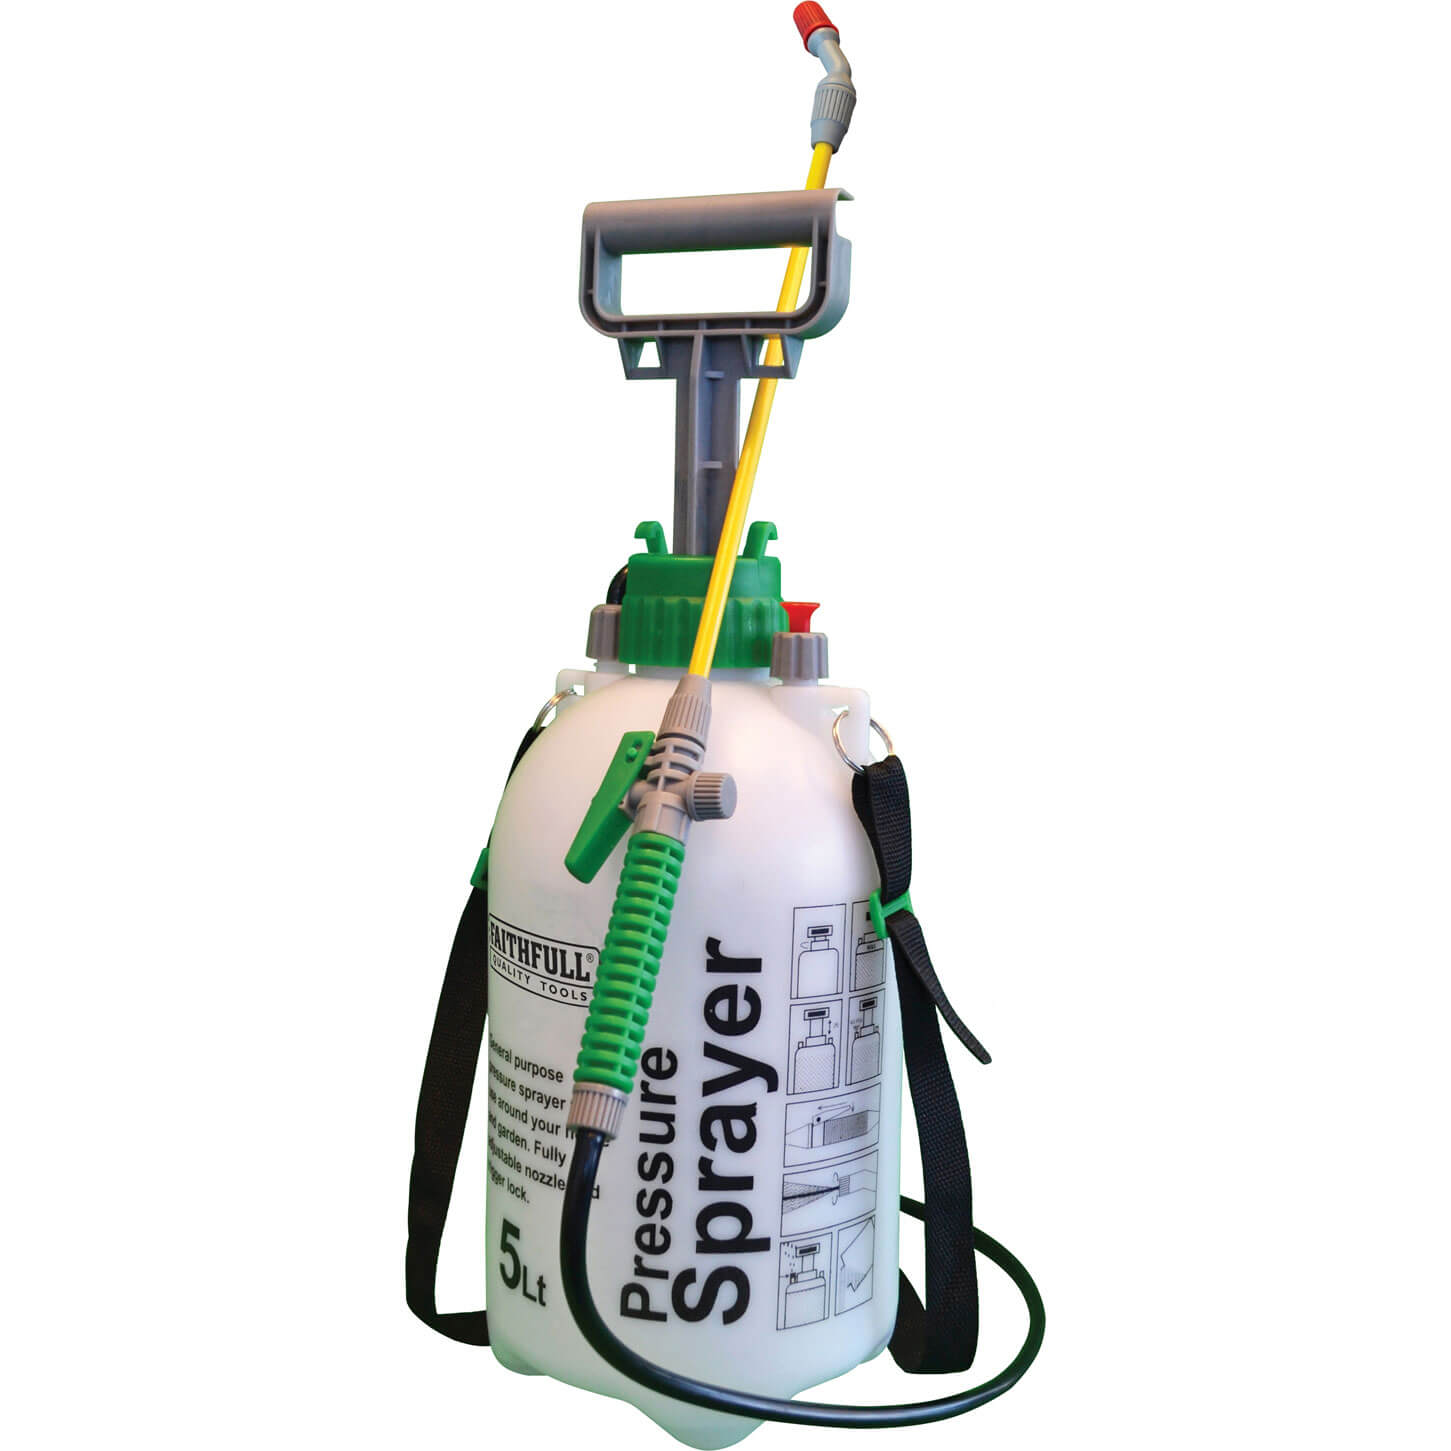 Faithfull 5 Litre Pressure Sprayer